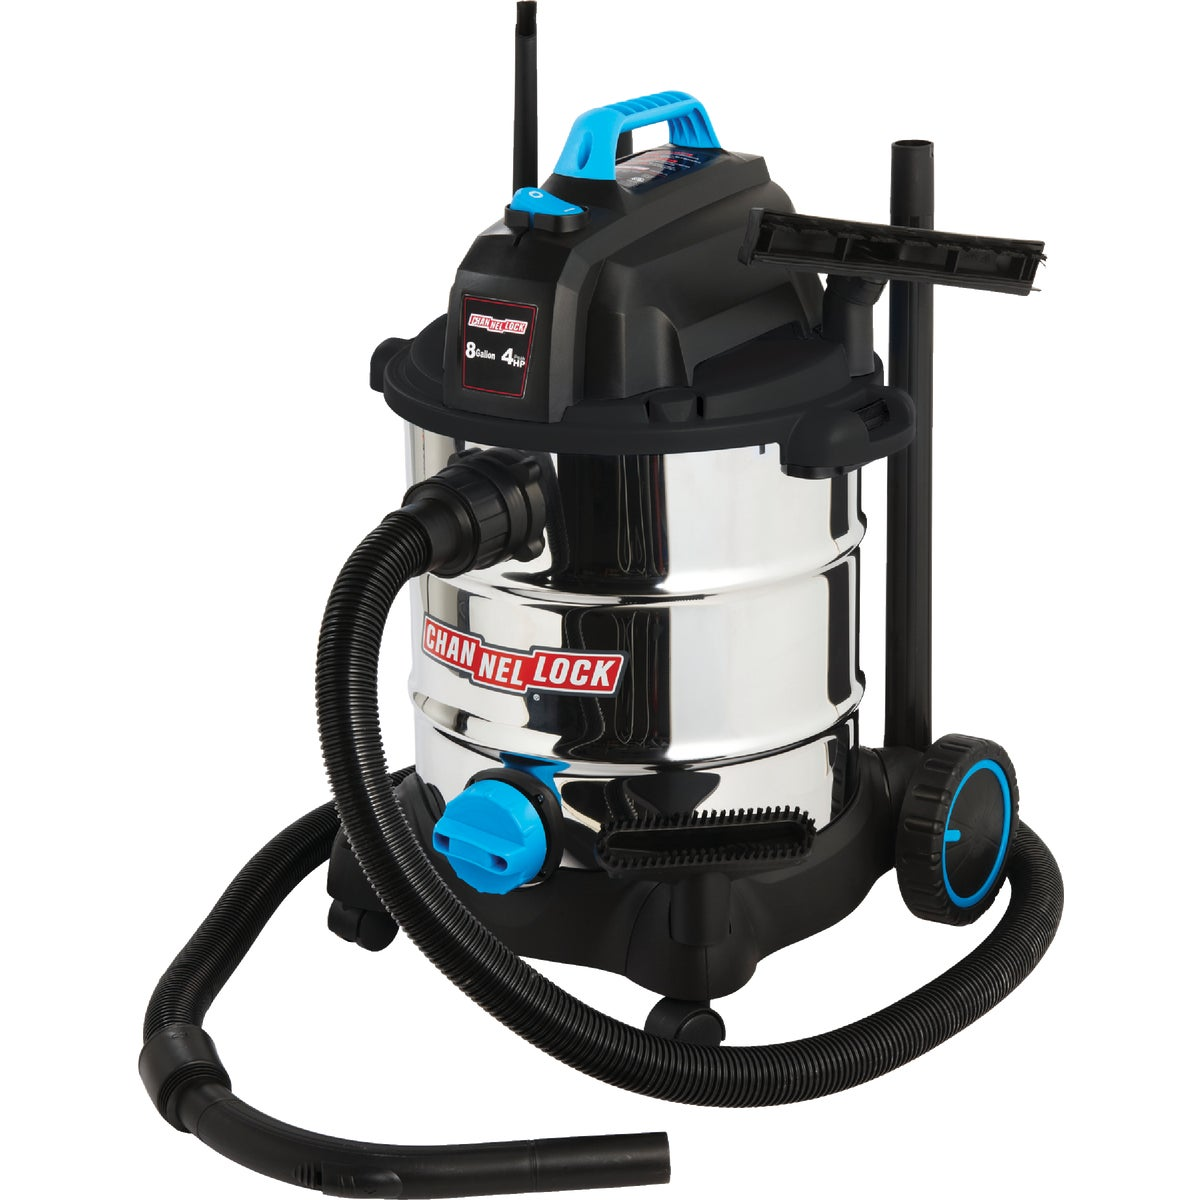 Channellock 8 Gal. Stainless Steel Wet/Dry Vacuum, VS810WD.CL